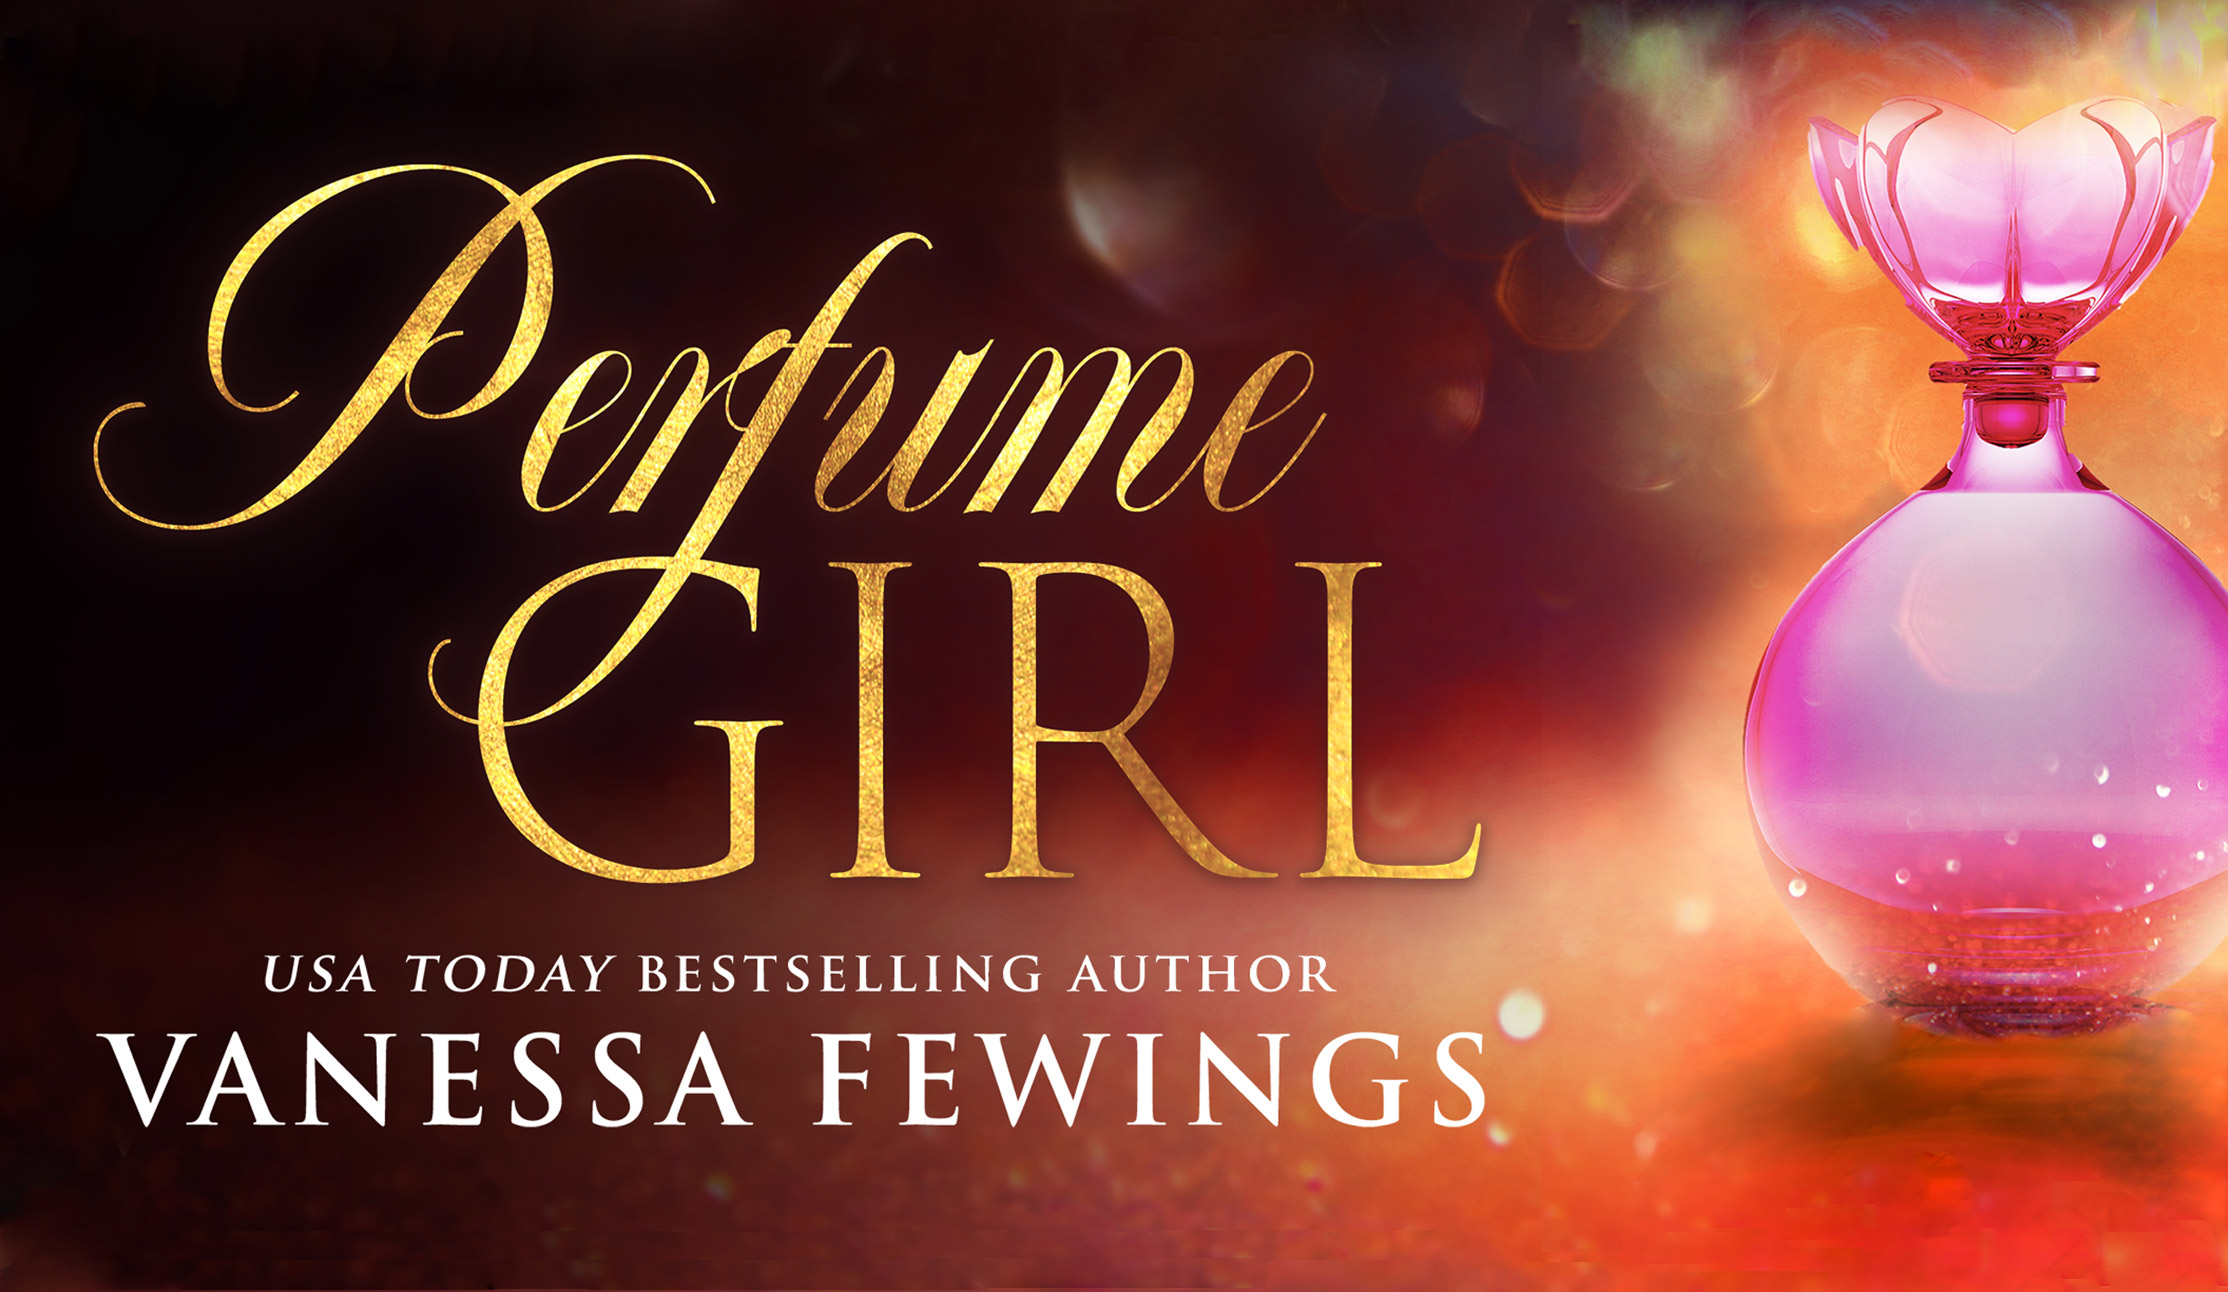 Perfume Girl by USA Today Bestselling Author Vanessa Fewings